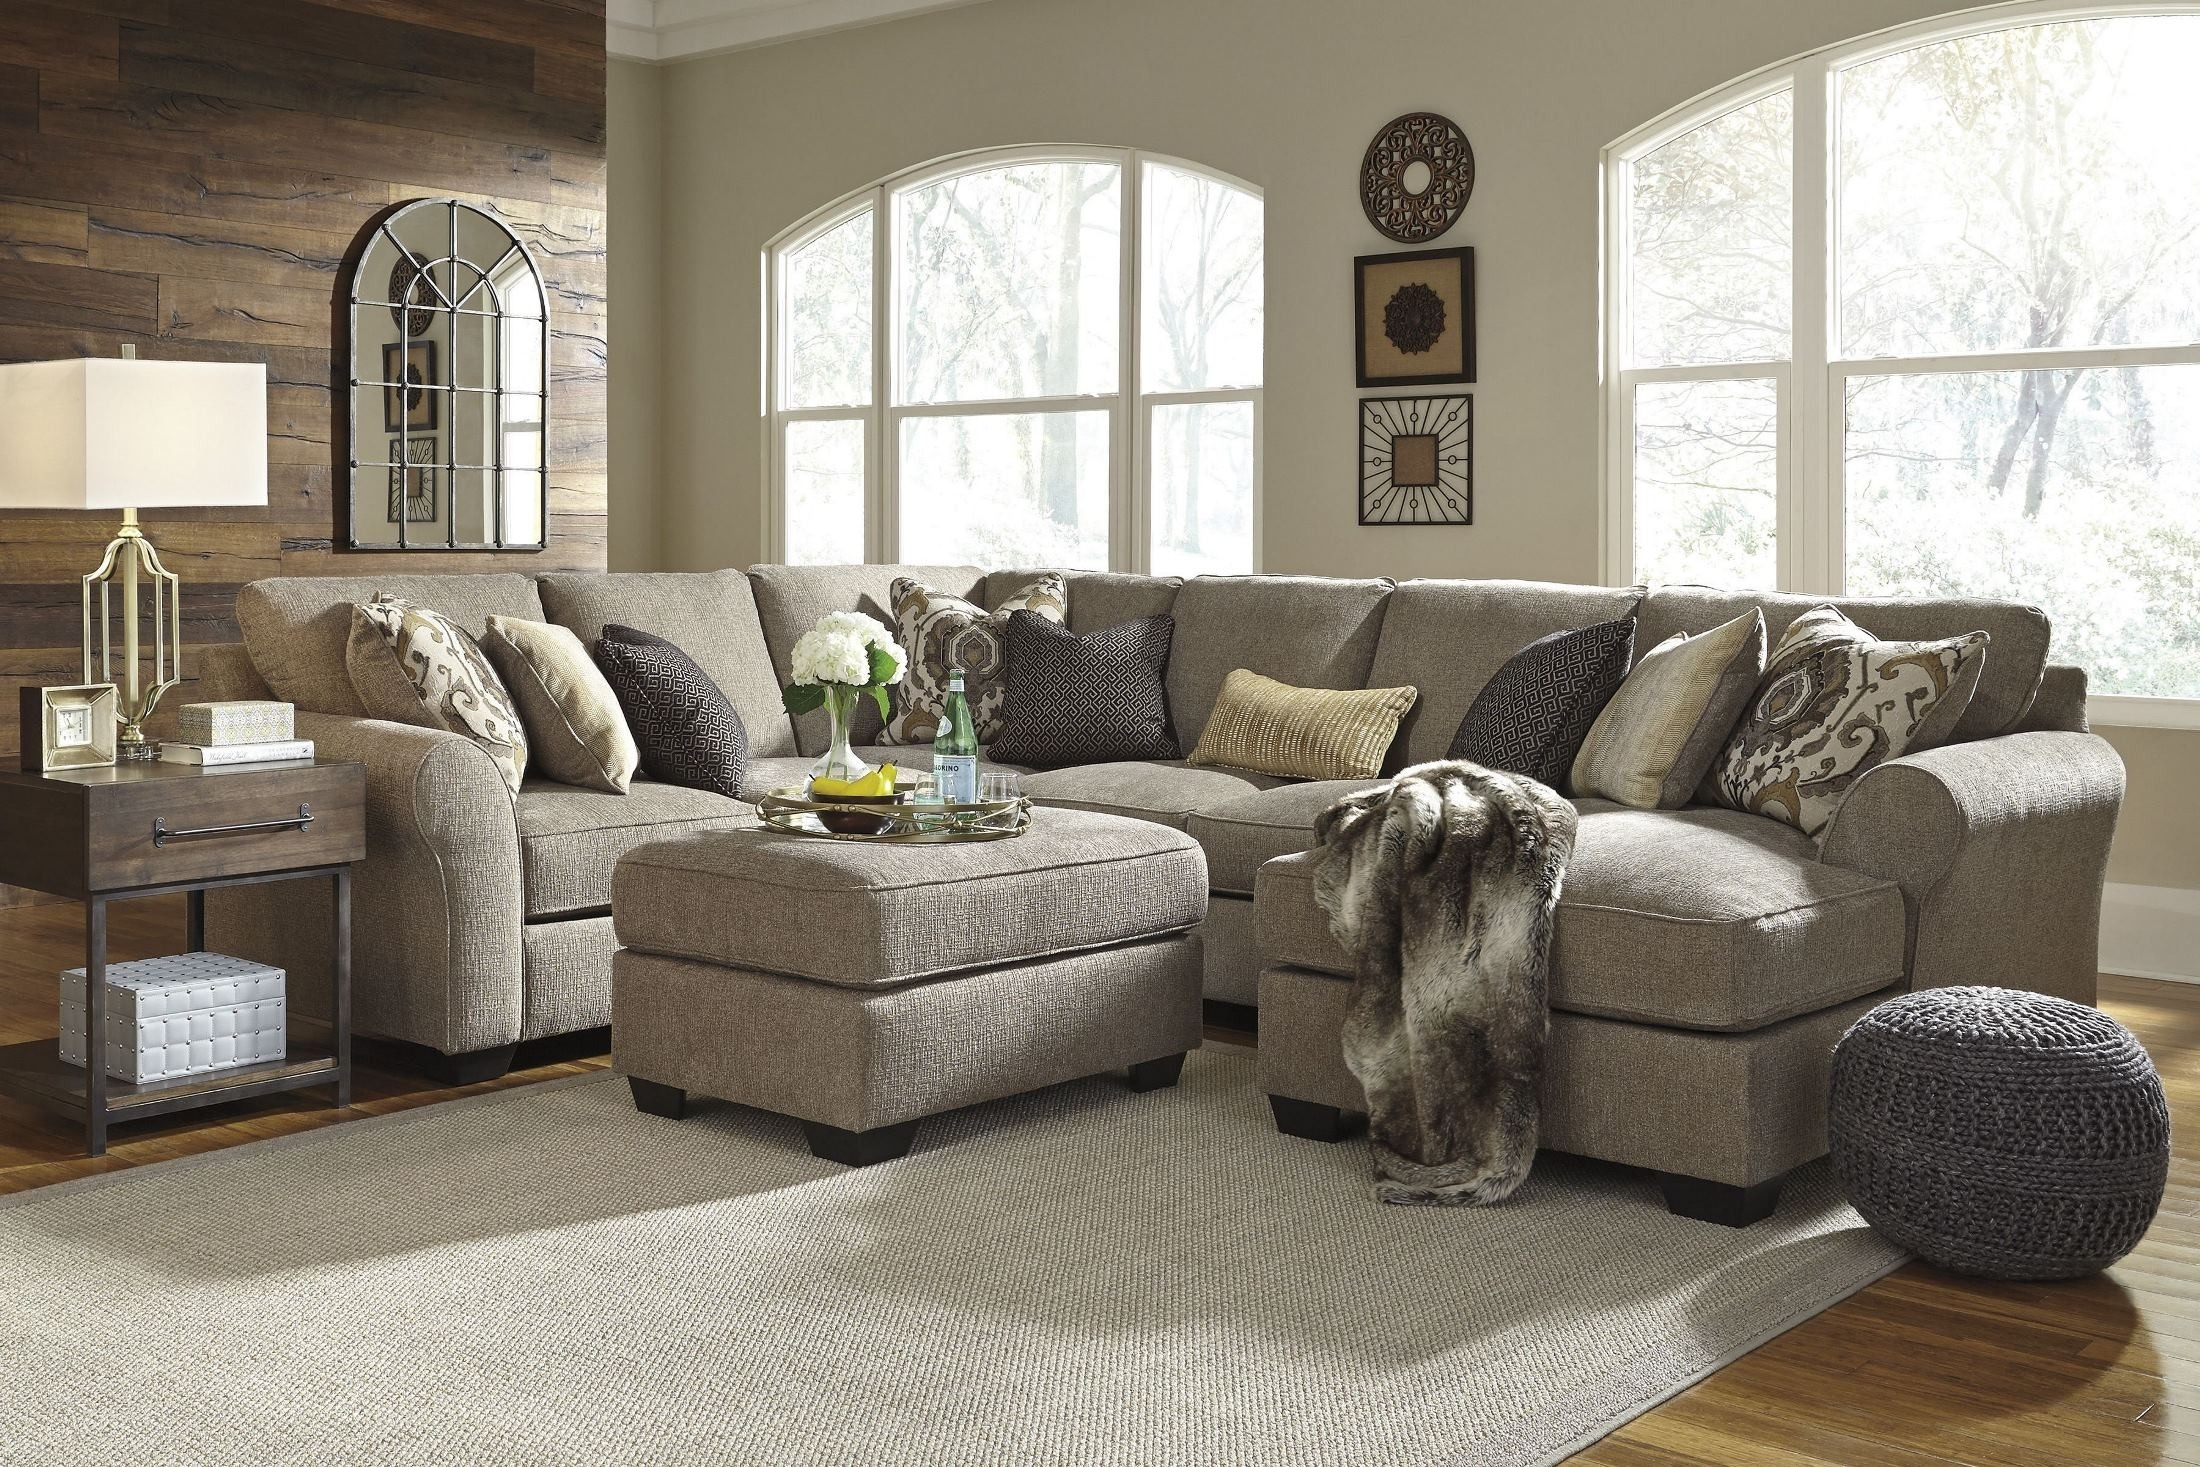 Raf Chaise Laf Sofa | Baci Living Room Throughout Mcdade Graphite 2 Piece Sectionals With Raf Chaise (Image 17 of 25)